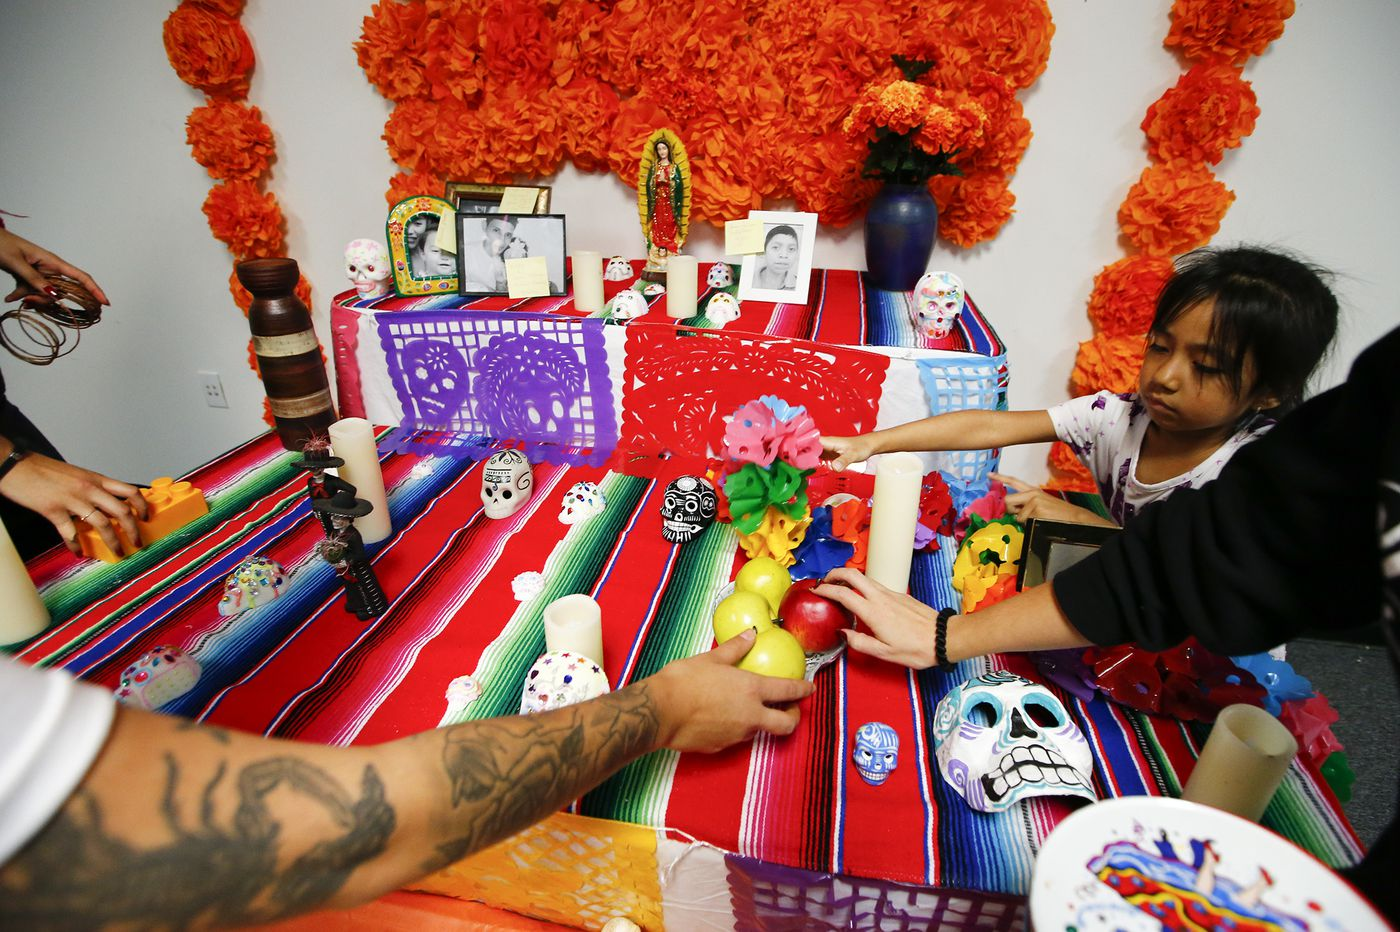 A Philadelphia Day of the Dead memorial honors migrant kids who died crossing the border